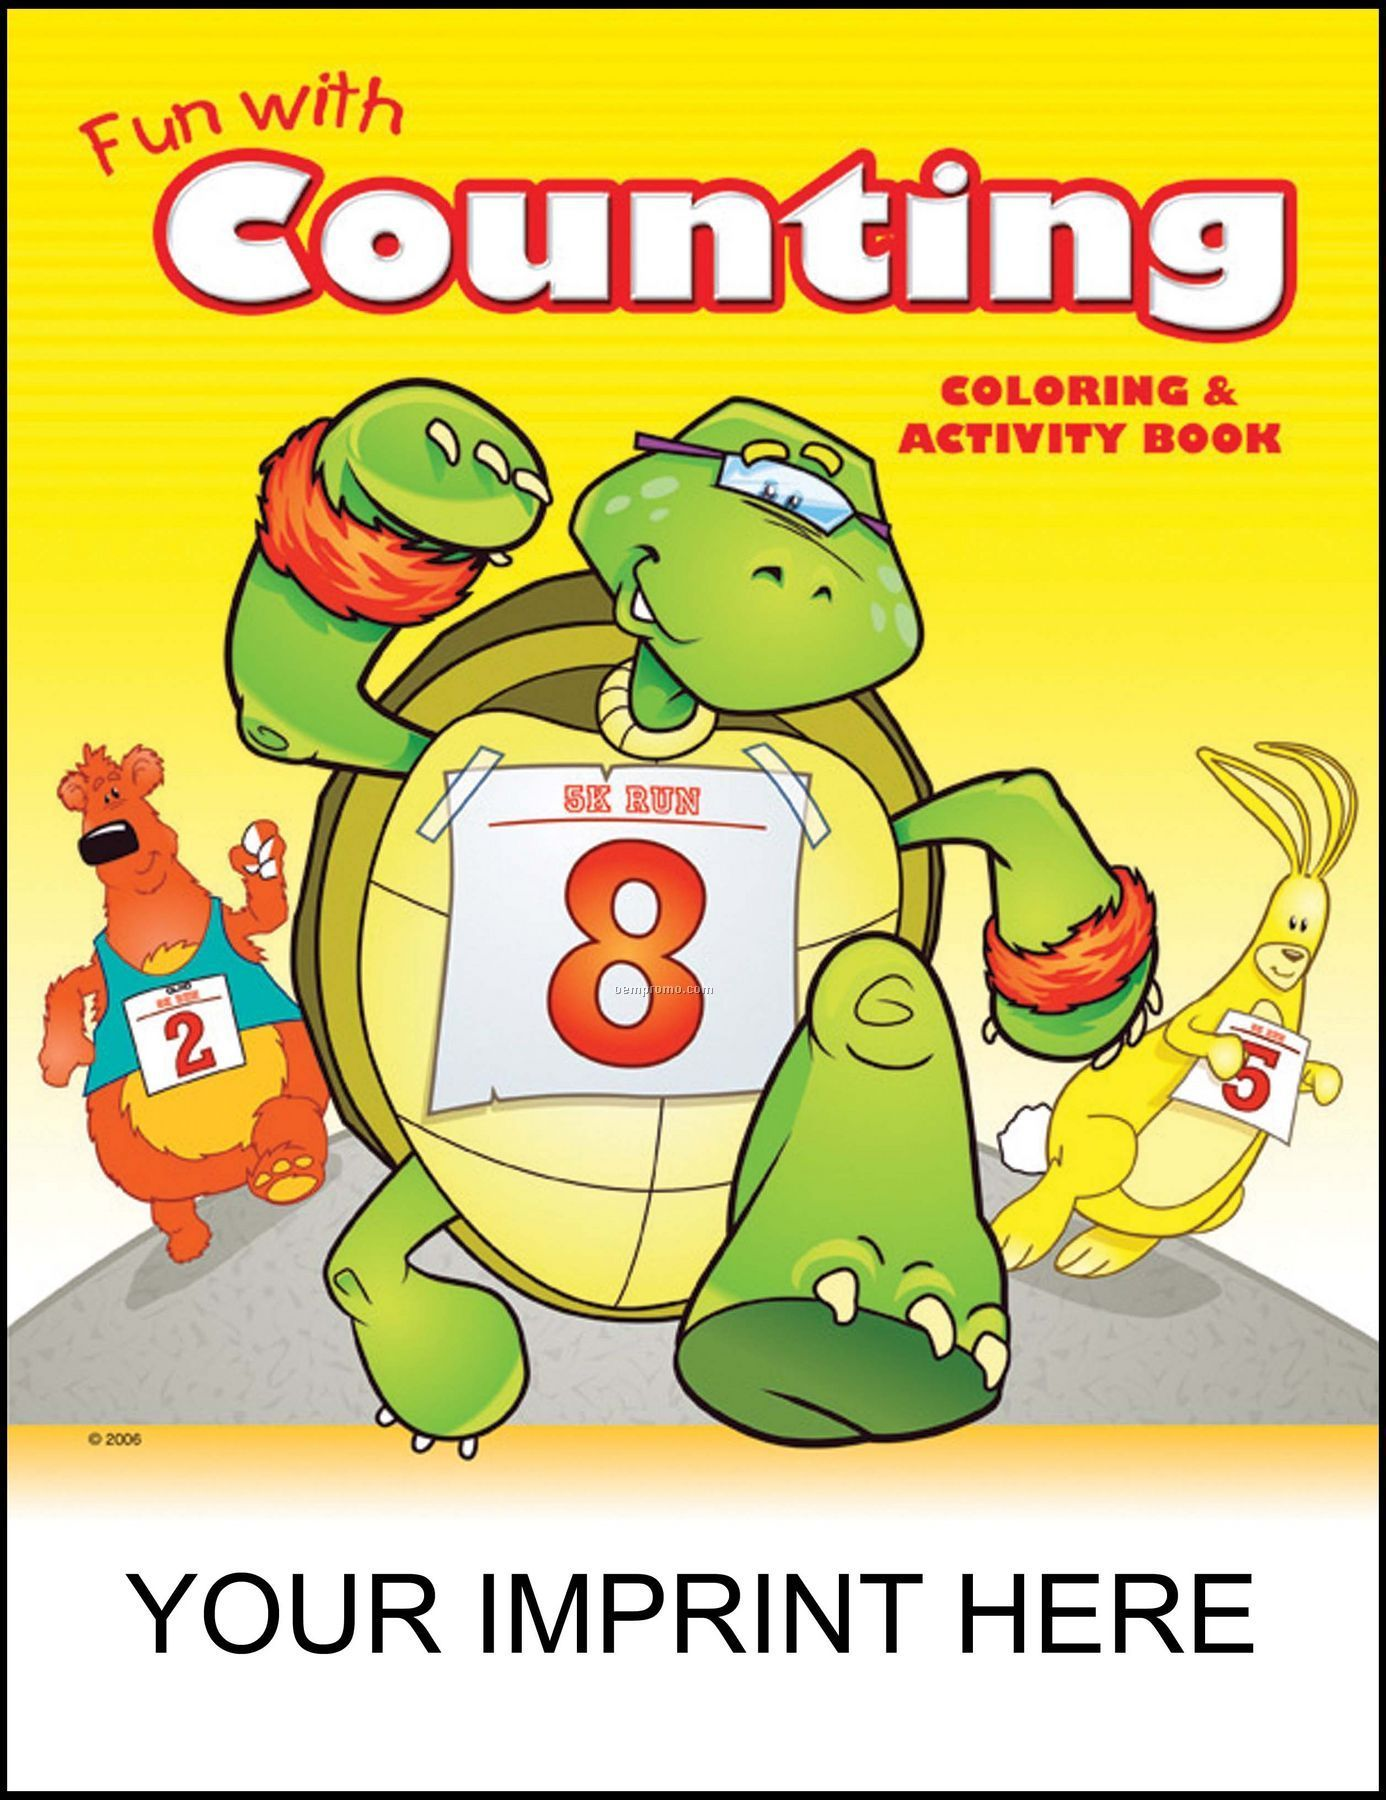 Fun With Counting Coloring & Activity Book